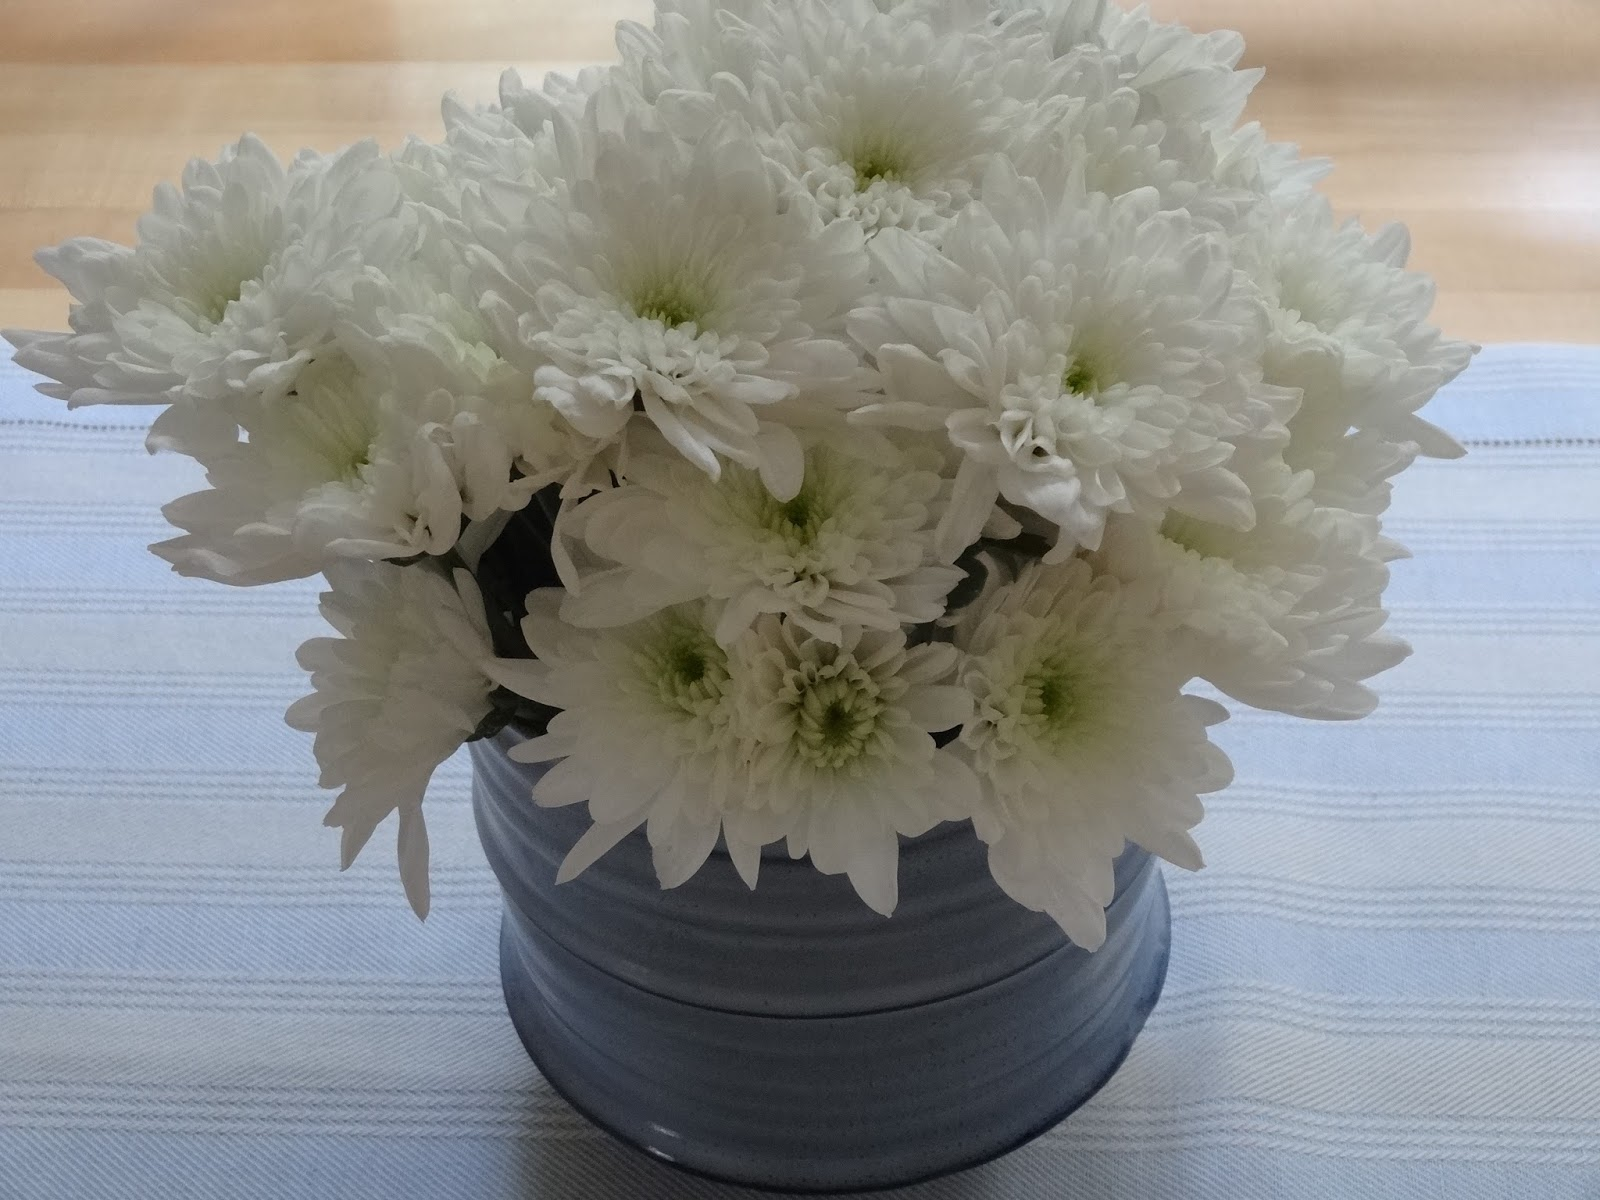 The sketchy reader june 2016 store flowers for no reason other than i want to do it i guess that our backyard patio and deck looks nice and the inside looks sad without flowers izmirmasajfo